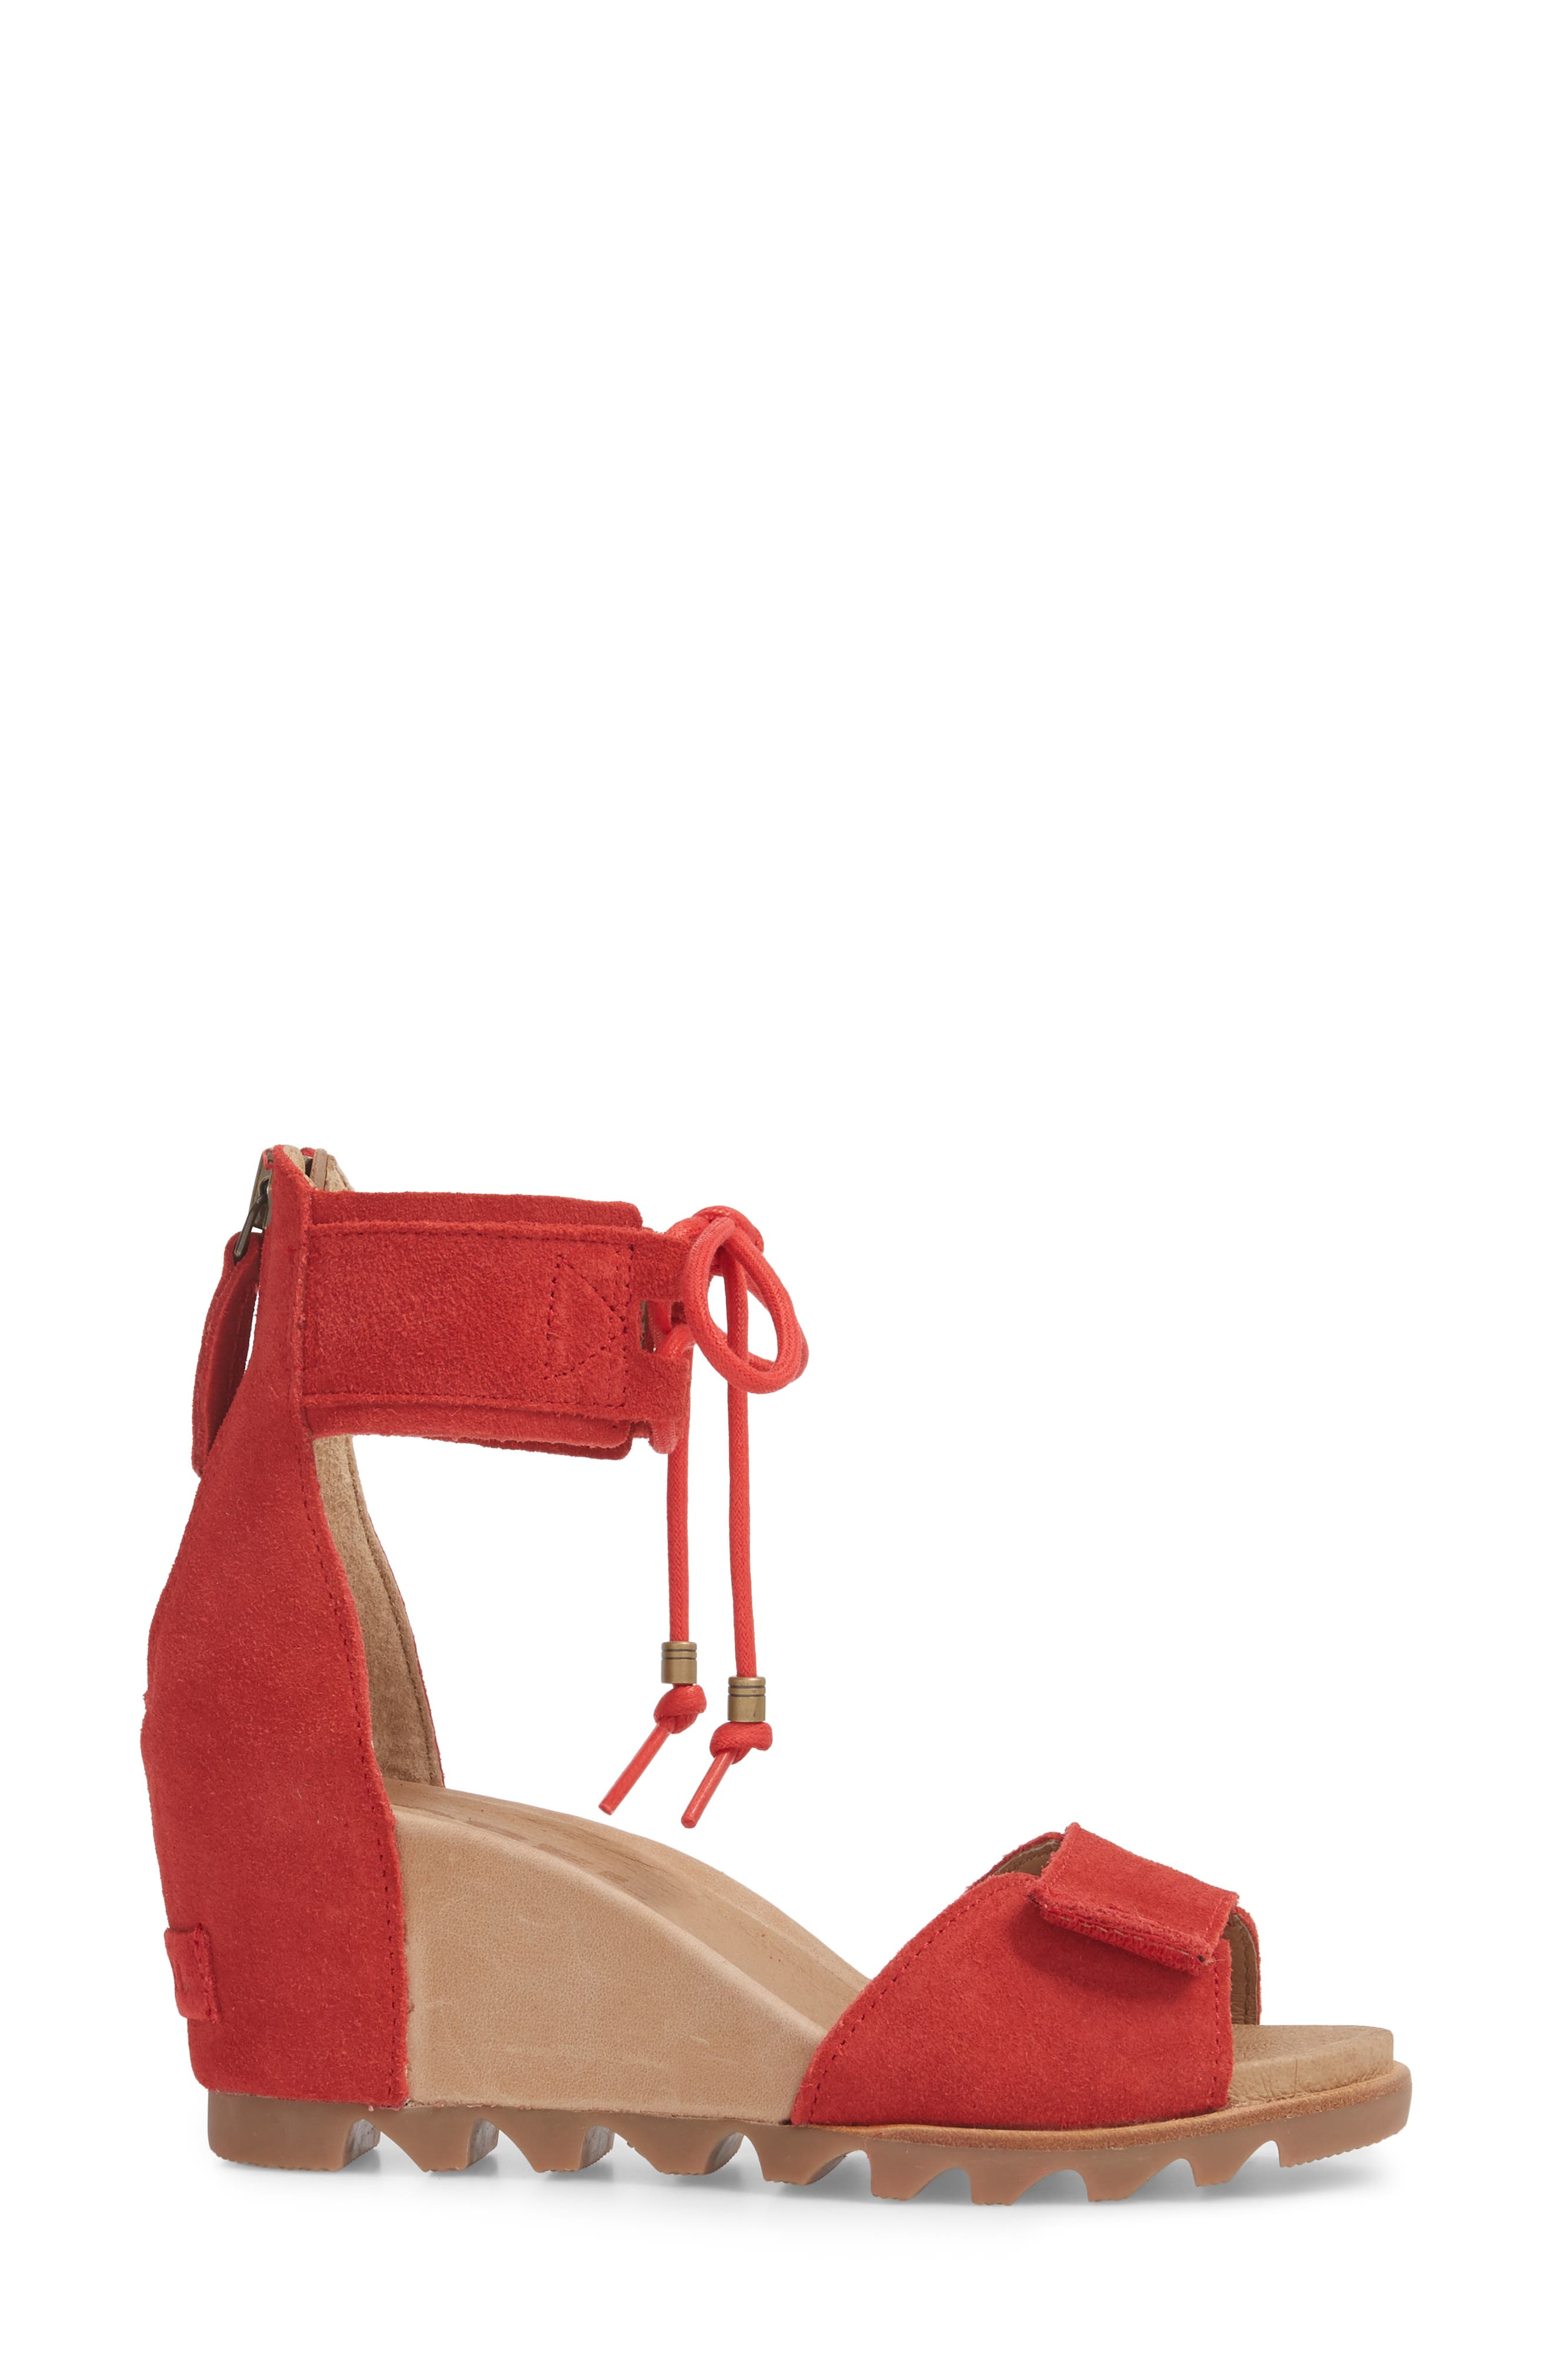 Joanie Cuff Wedge Sandal,                             Alternate thumbnail 3, color,                             Bright Red